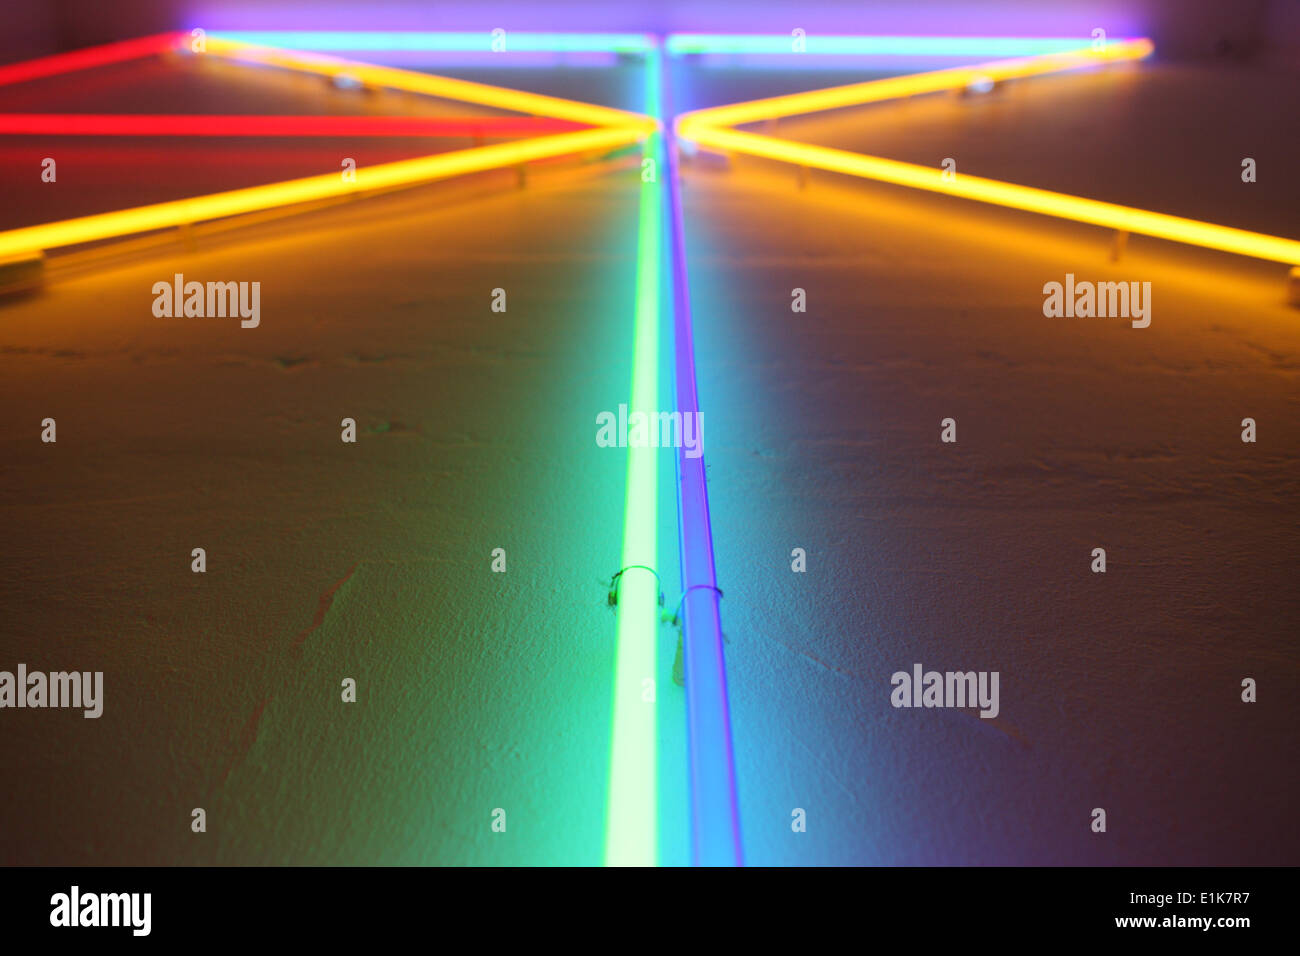 Neon lights - Stock Image